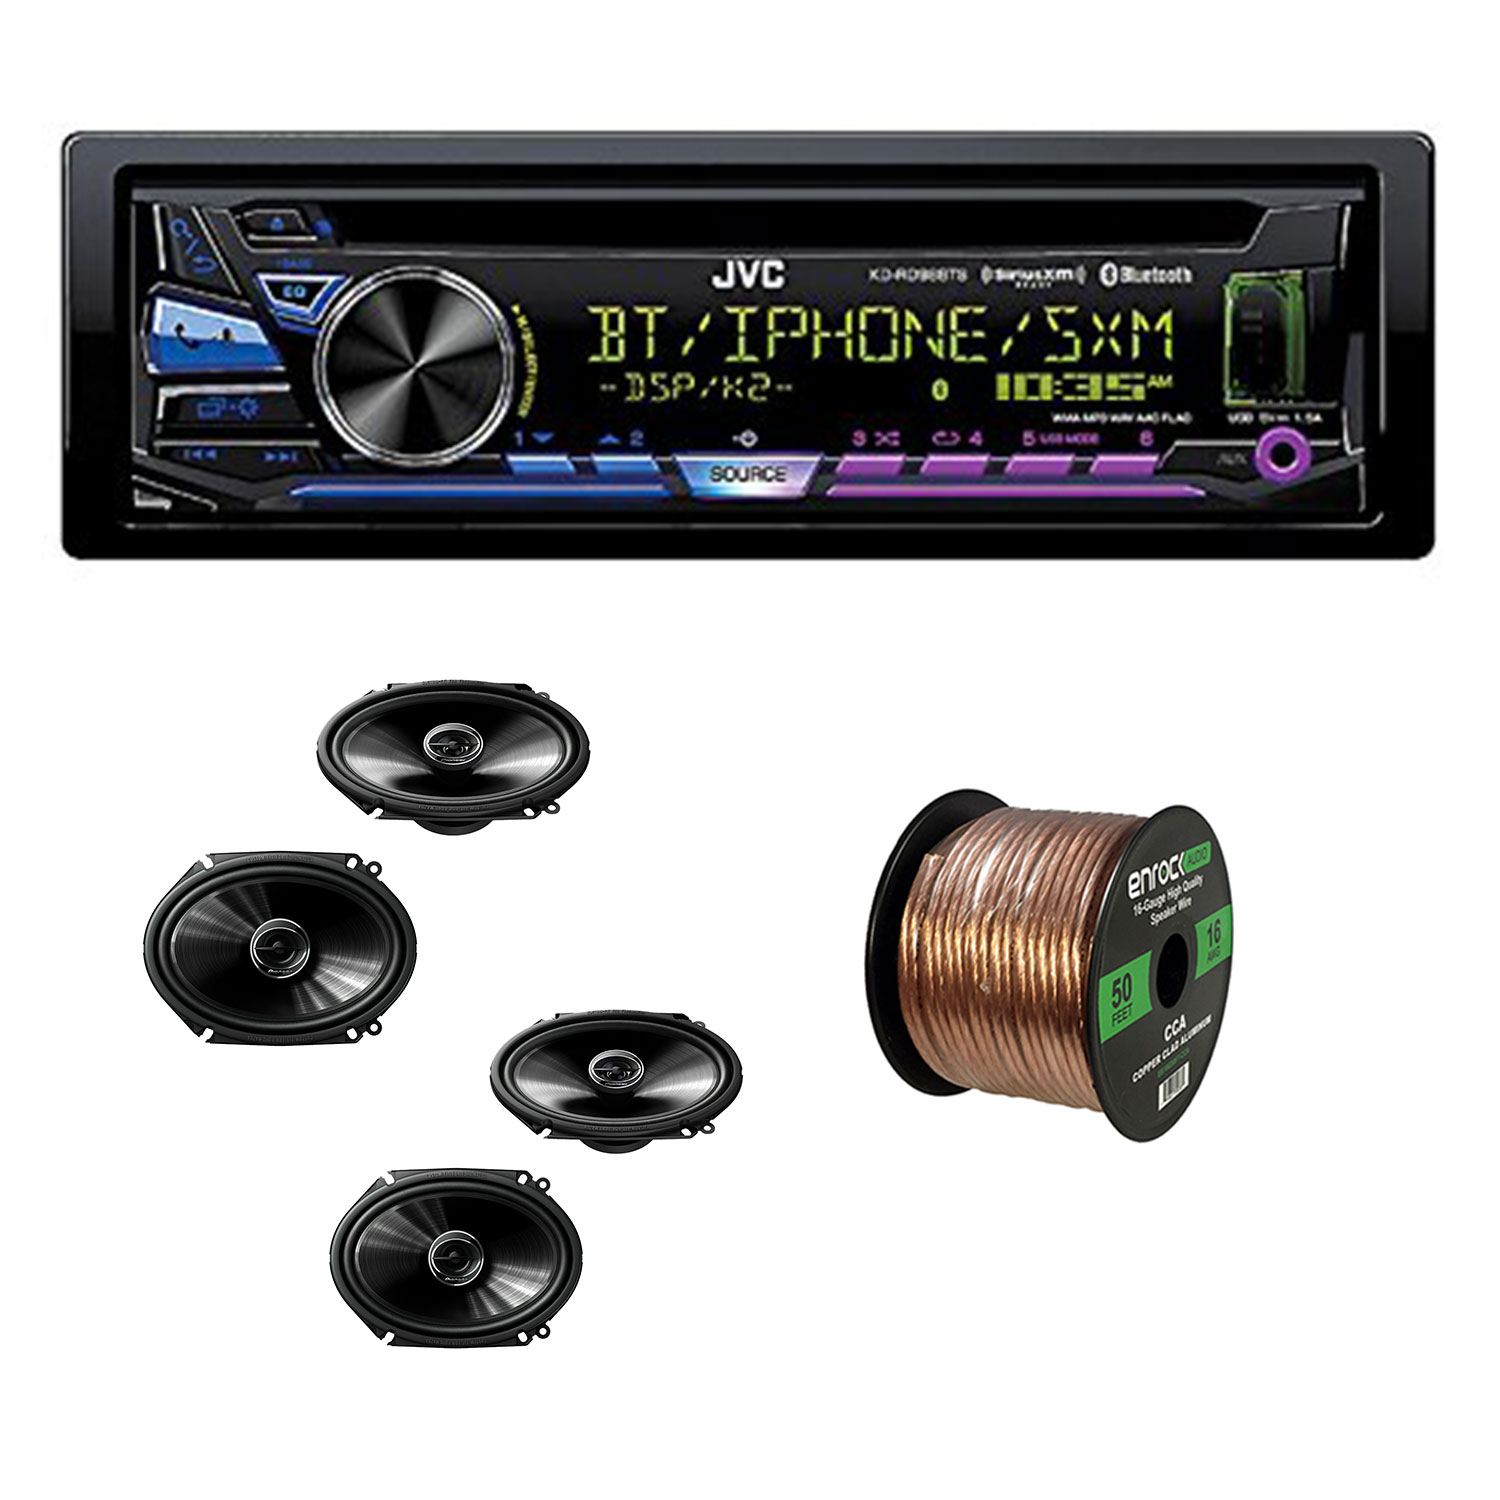 "JVC KD-RD88BT Single DIN CD Receiver With Bluetooth, USB/Aux Input With Pioneer TS-G6845R 250 Watt 6 x 8"" 2-Way Coaxial Car Audio Speakers (2-Pairs) & Enrock Audio 16-Gauge 50 Foot Speaker Wire"